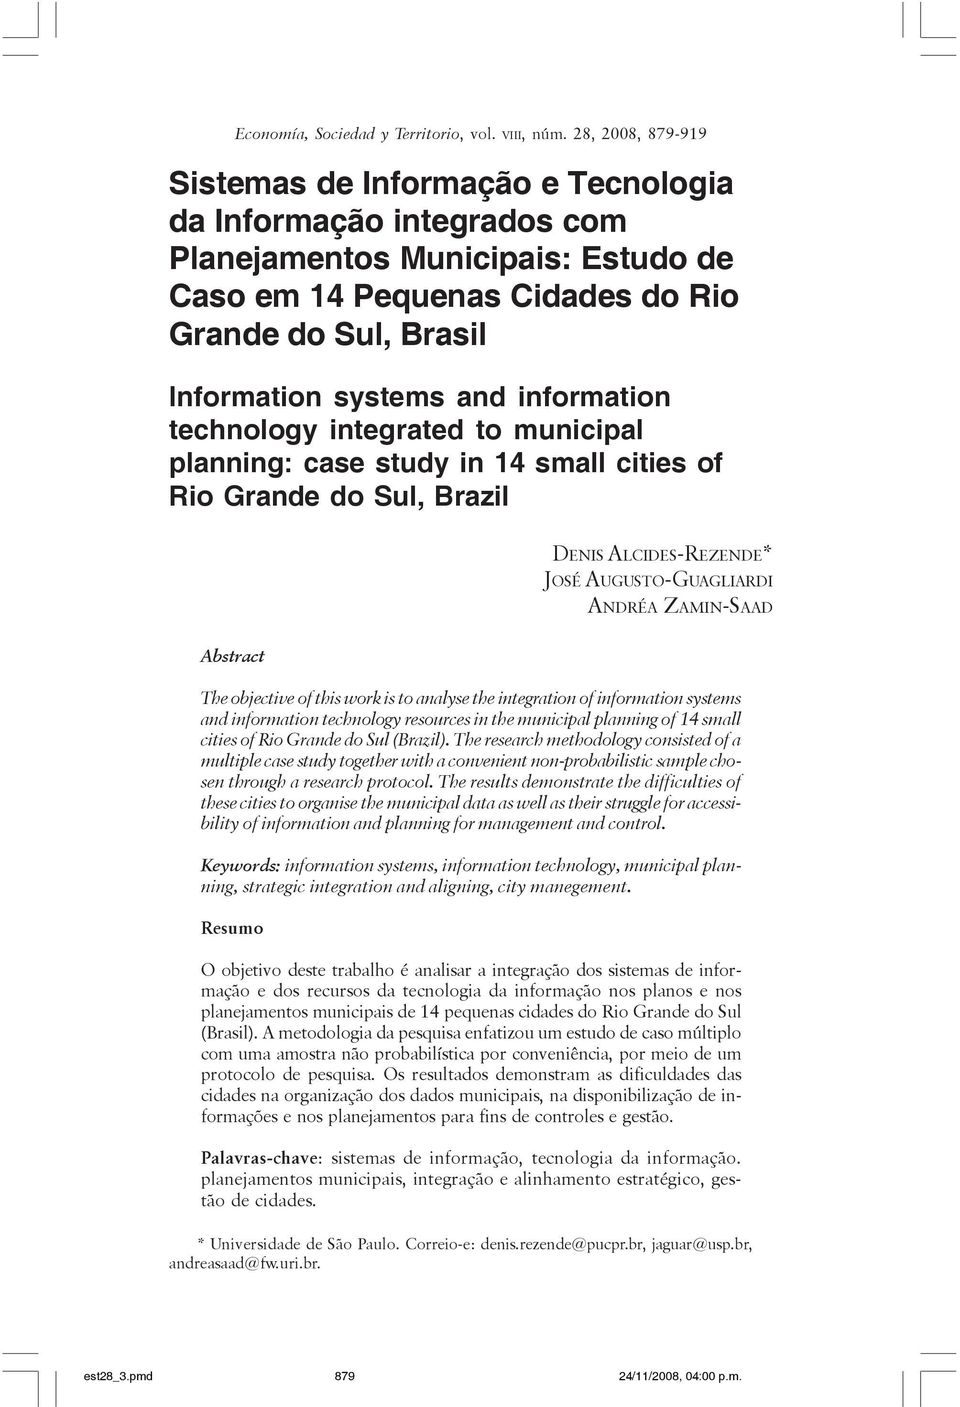 Information systems and information technology integrated to municipal planning: case study in 14 small cities of Rio Grande do Sul, Brazil DENIS ALCIDES-REZENDE* JOSÉ AUGUSTO-GUAGLIARDI ANDRÉA